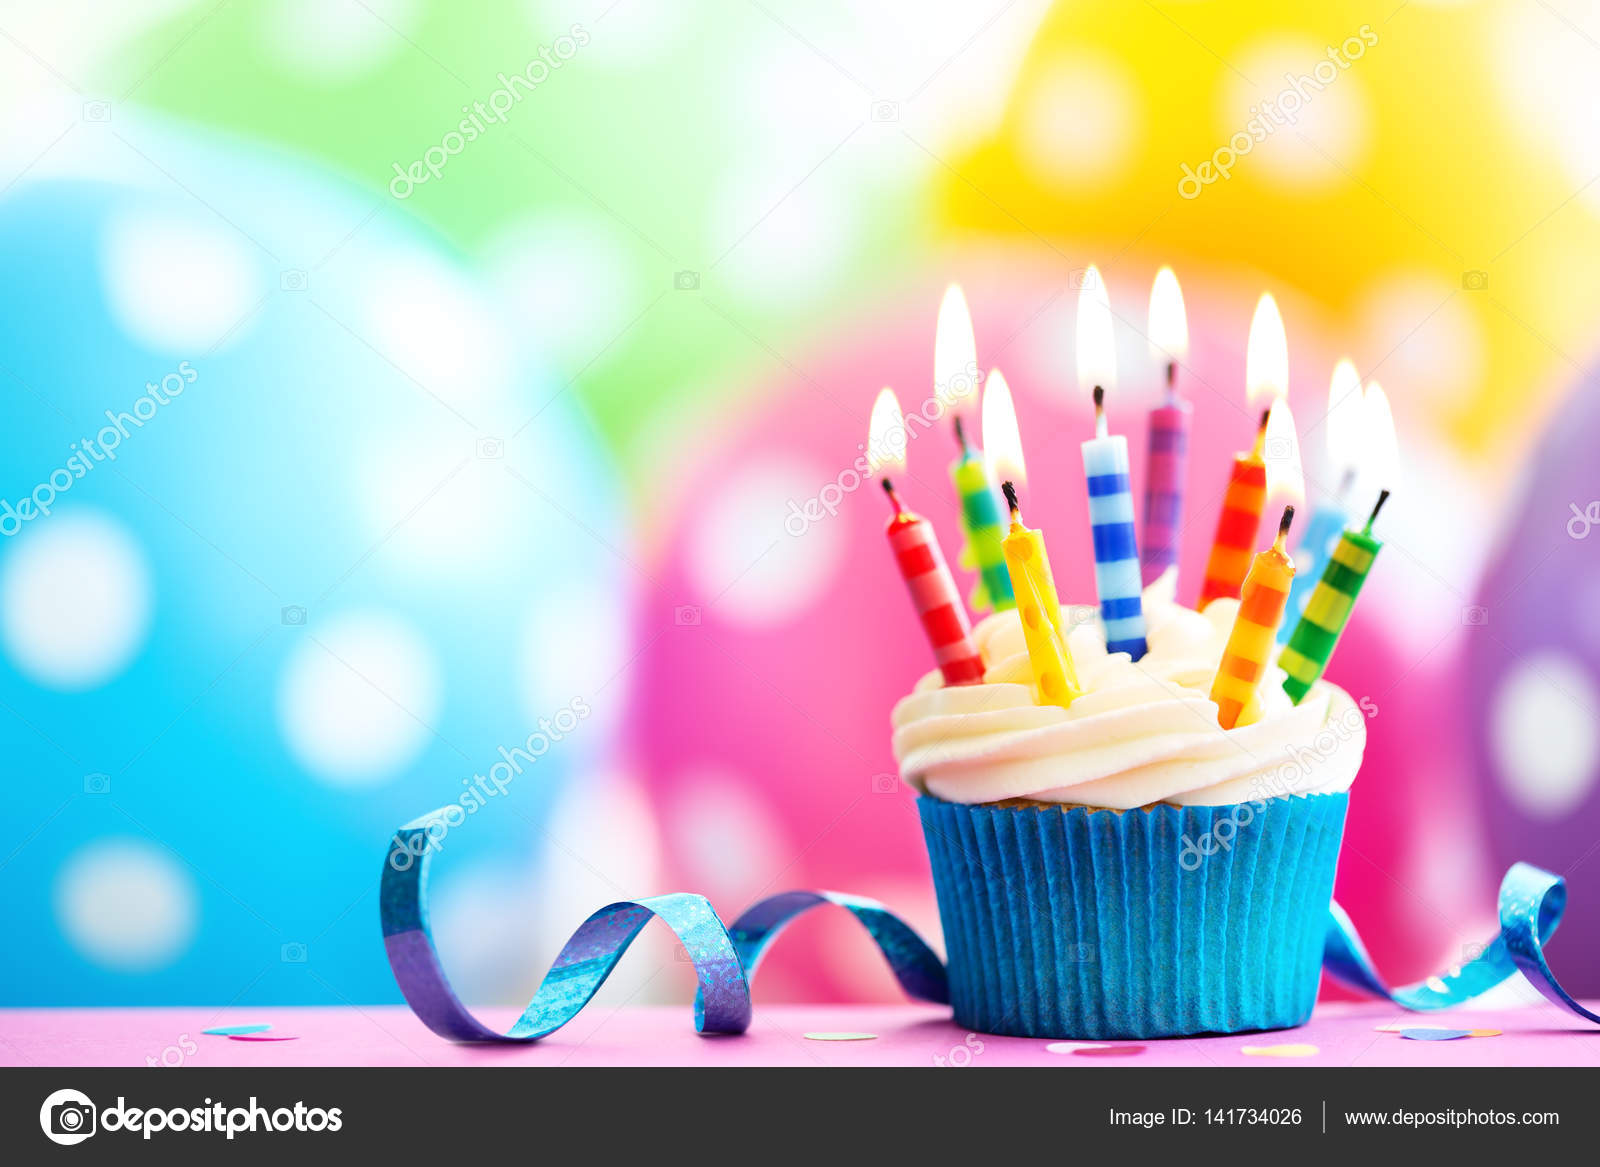 colorful birthday images ; depositphotos_141734026-stock-photo-colorful-birthday-cupcake